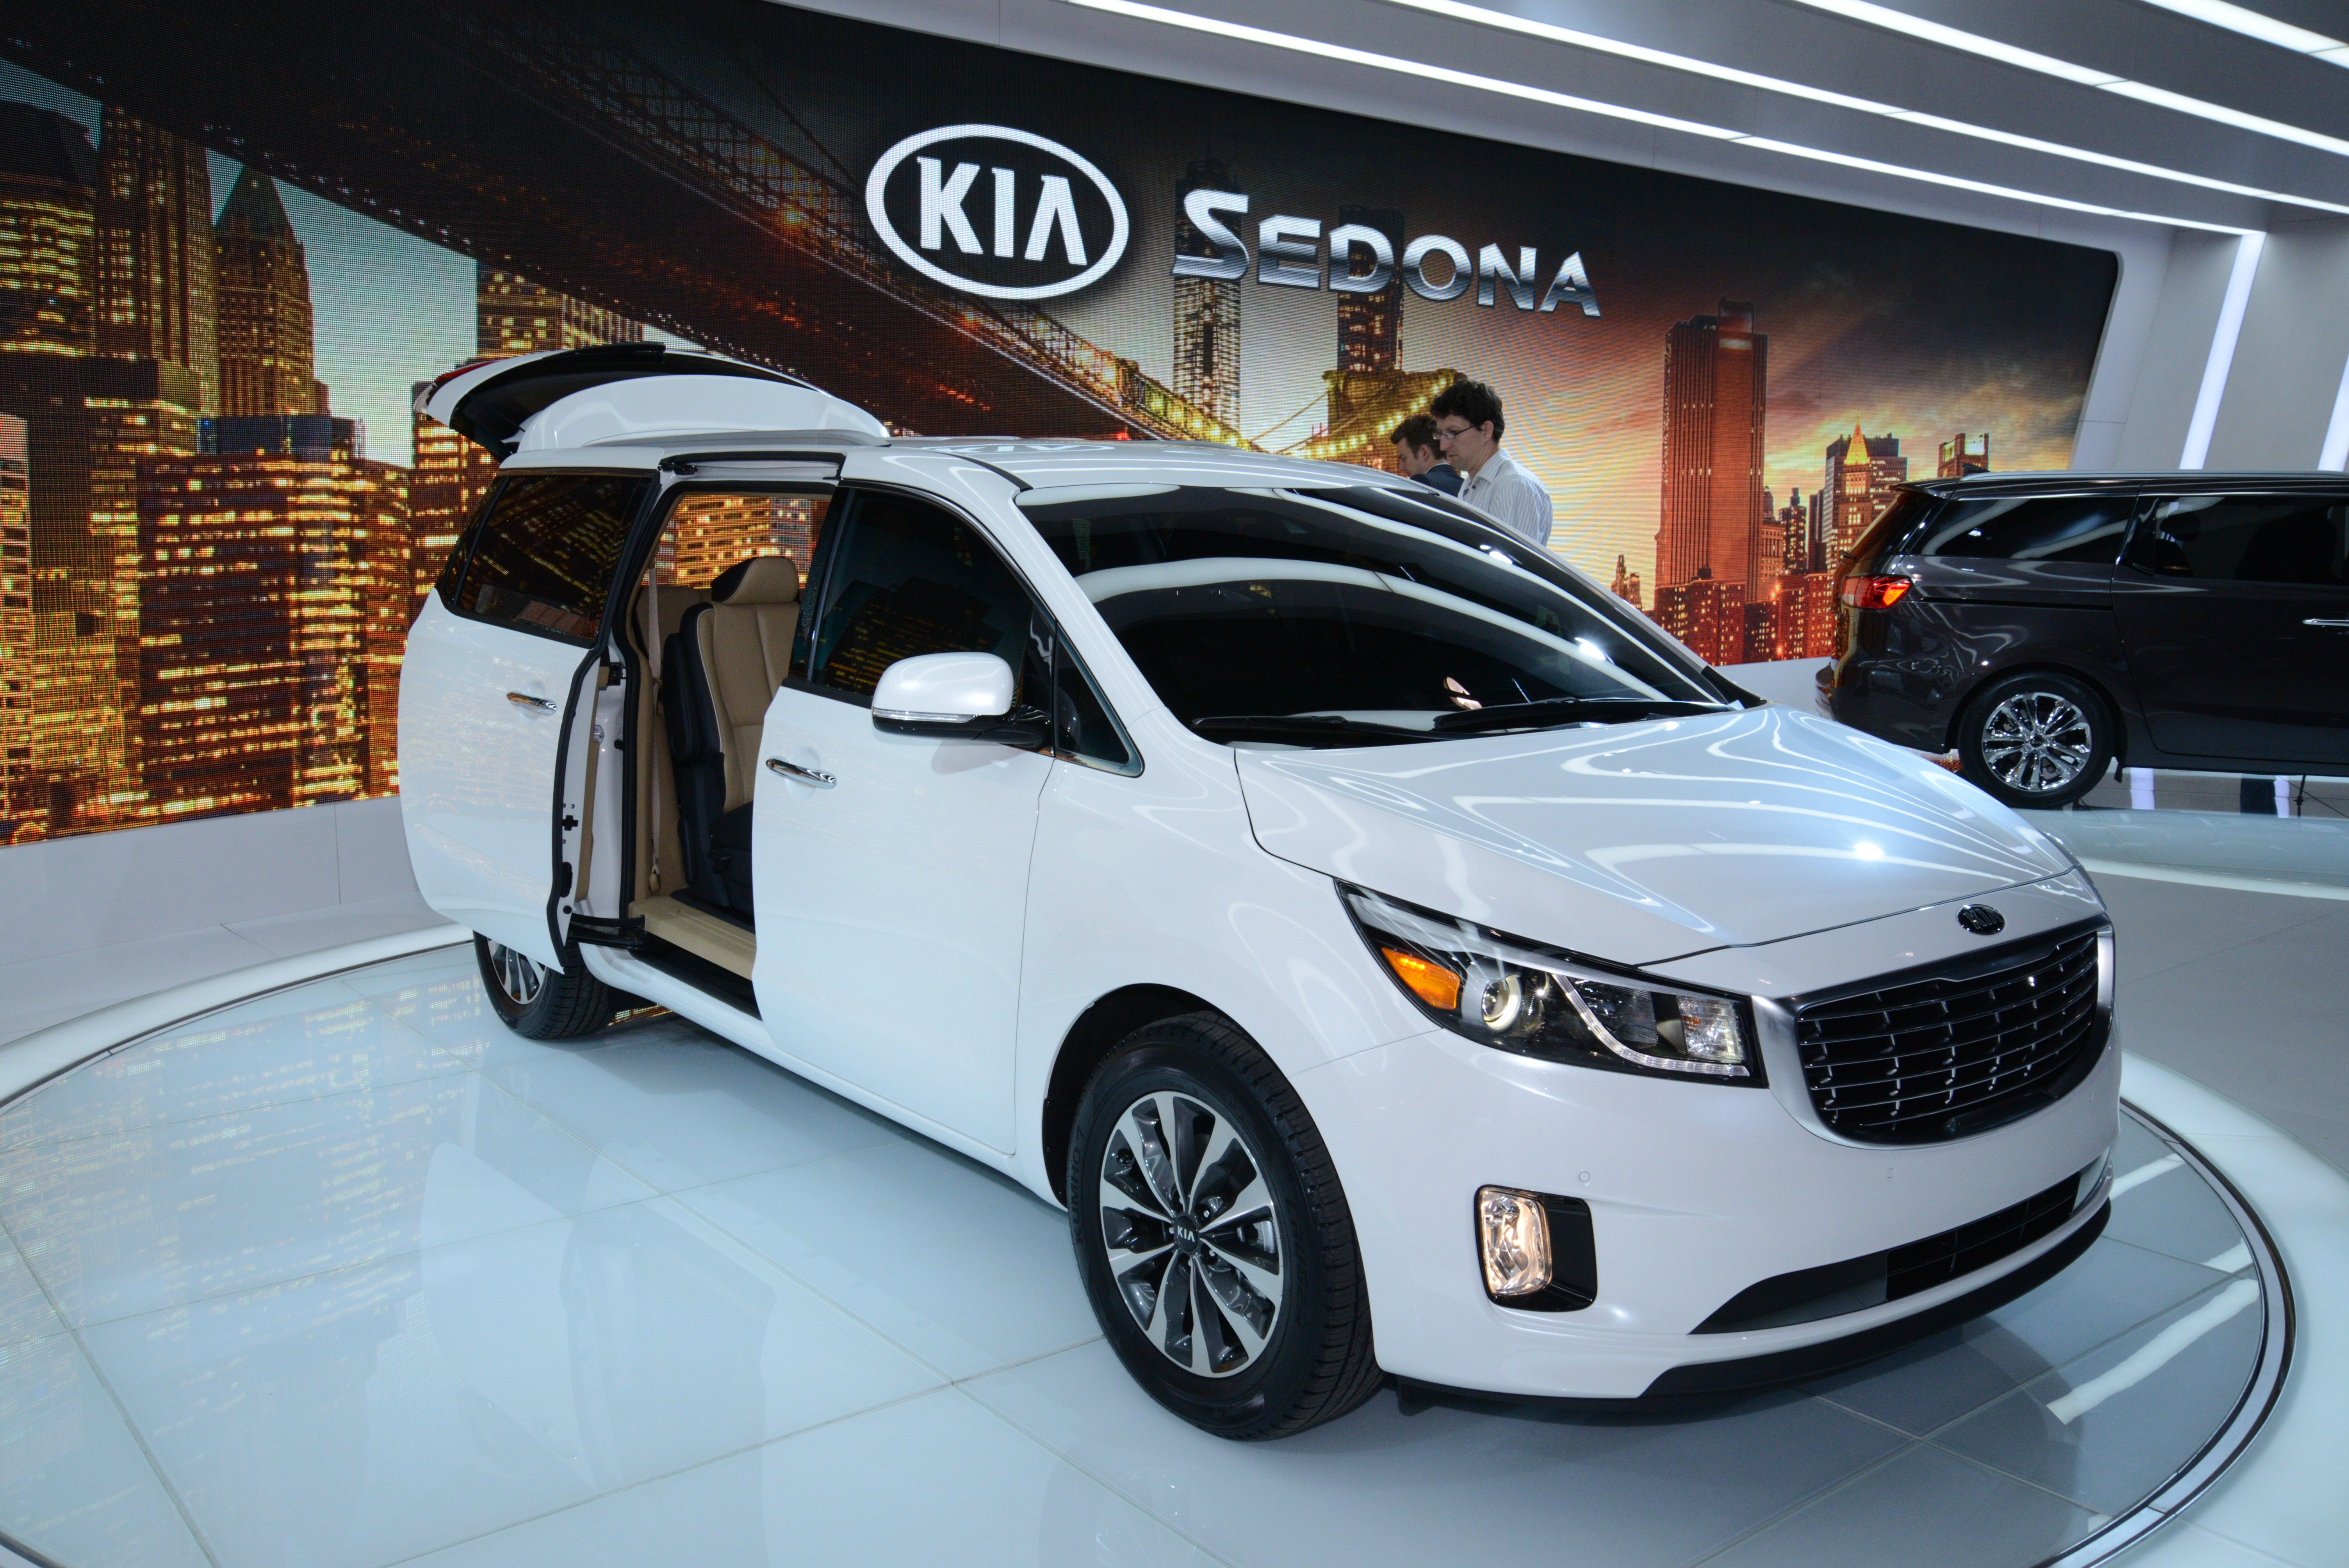 2015 kia carnival sedona breaks cover in new york image 243043. Black Bedroom Furniture Sets. Home Design Ideas